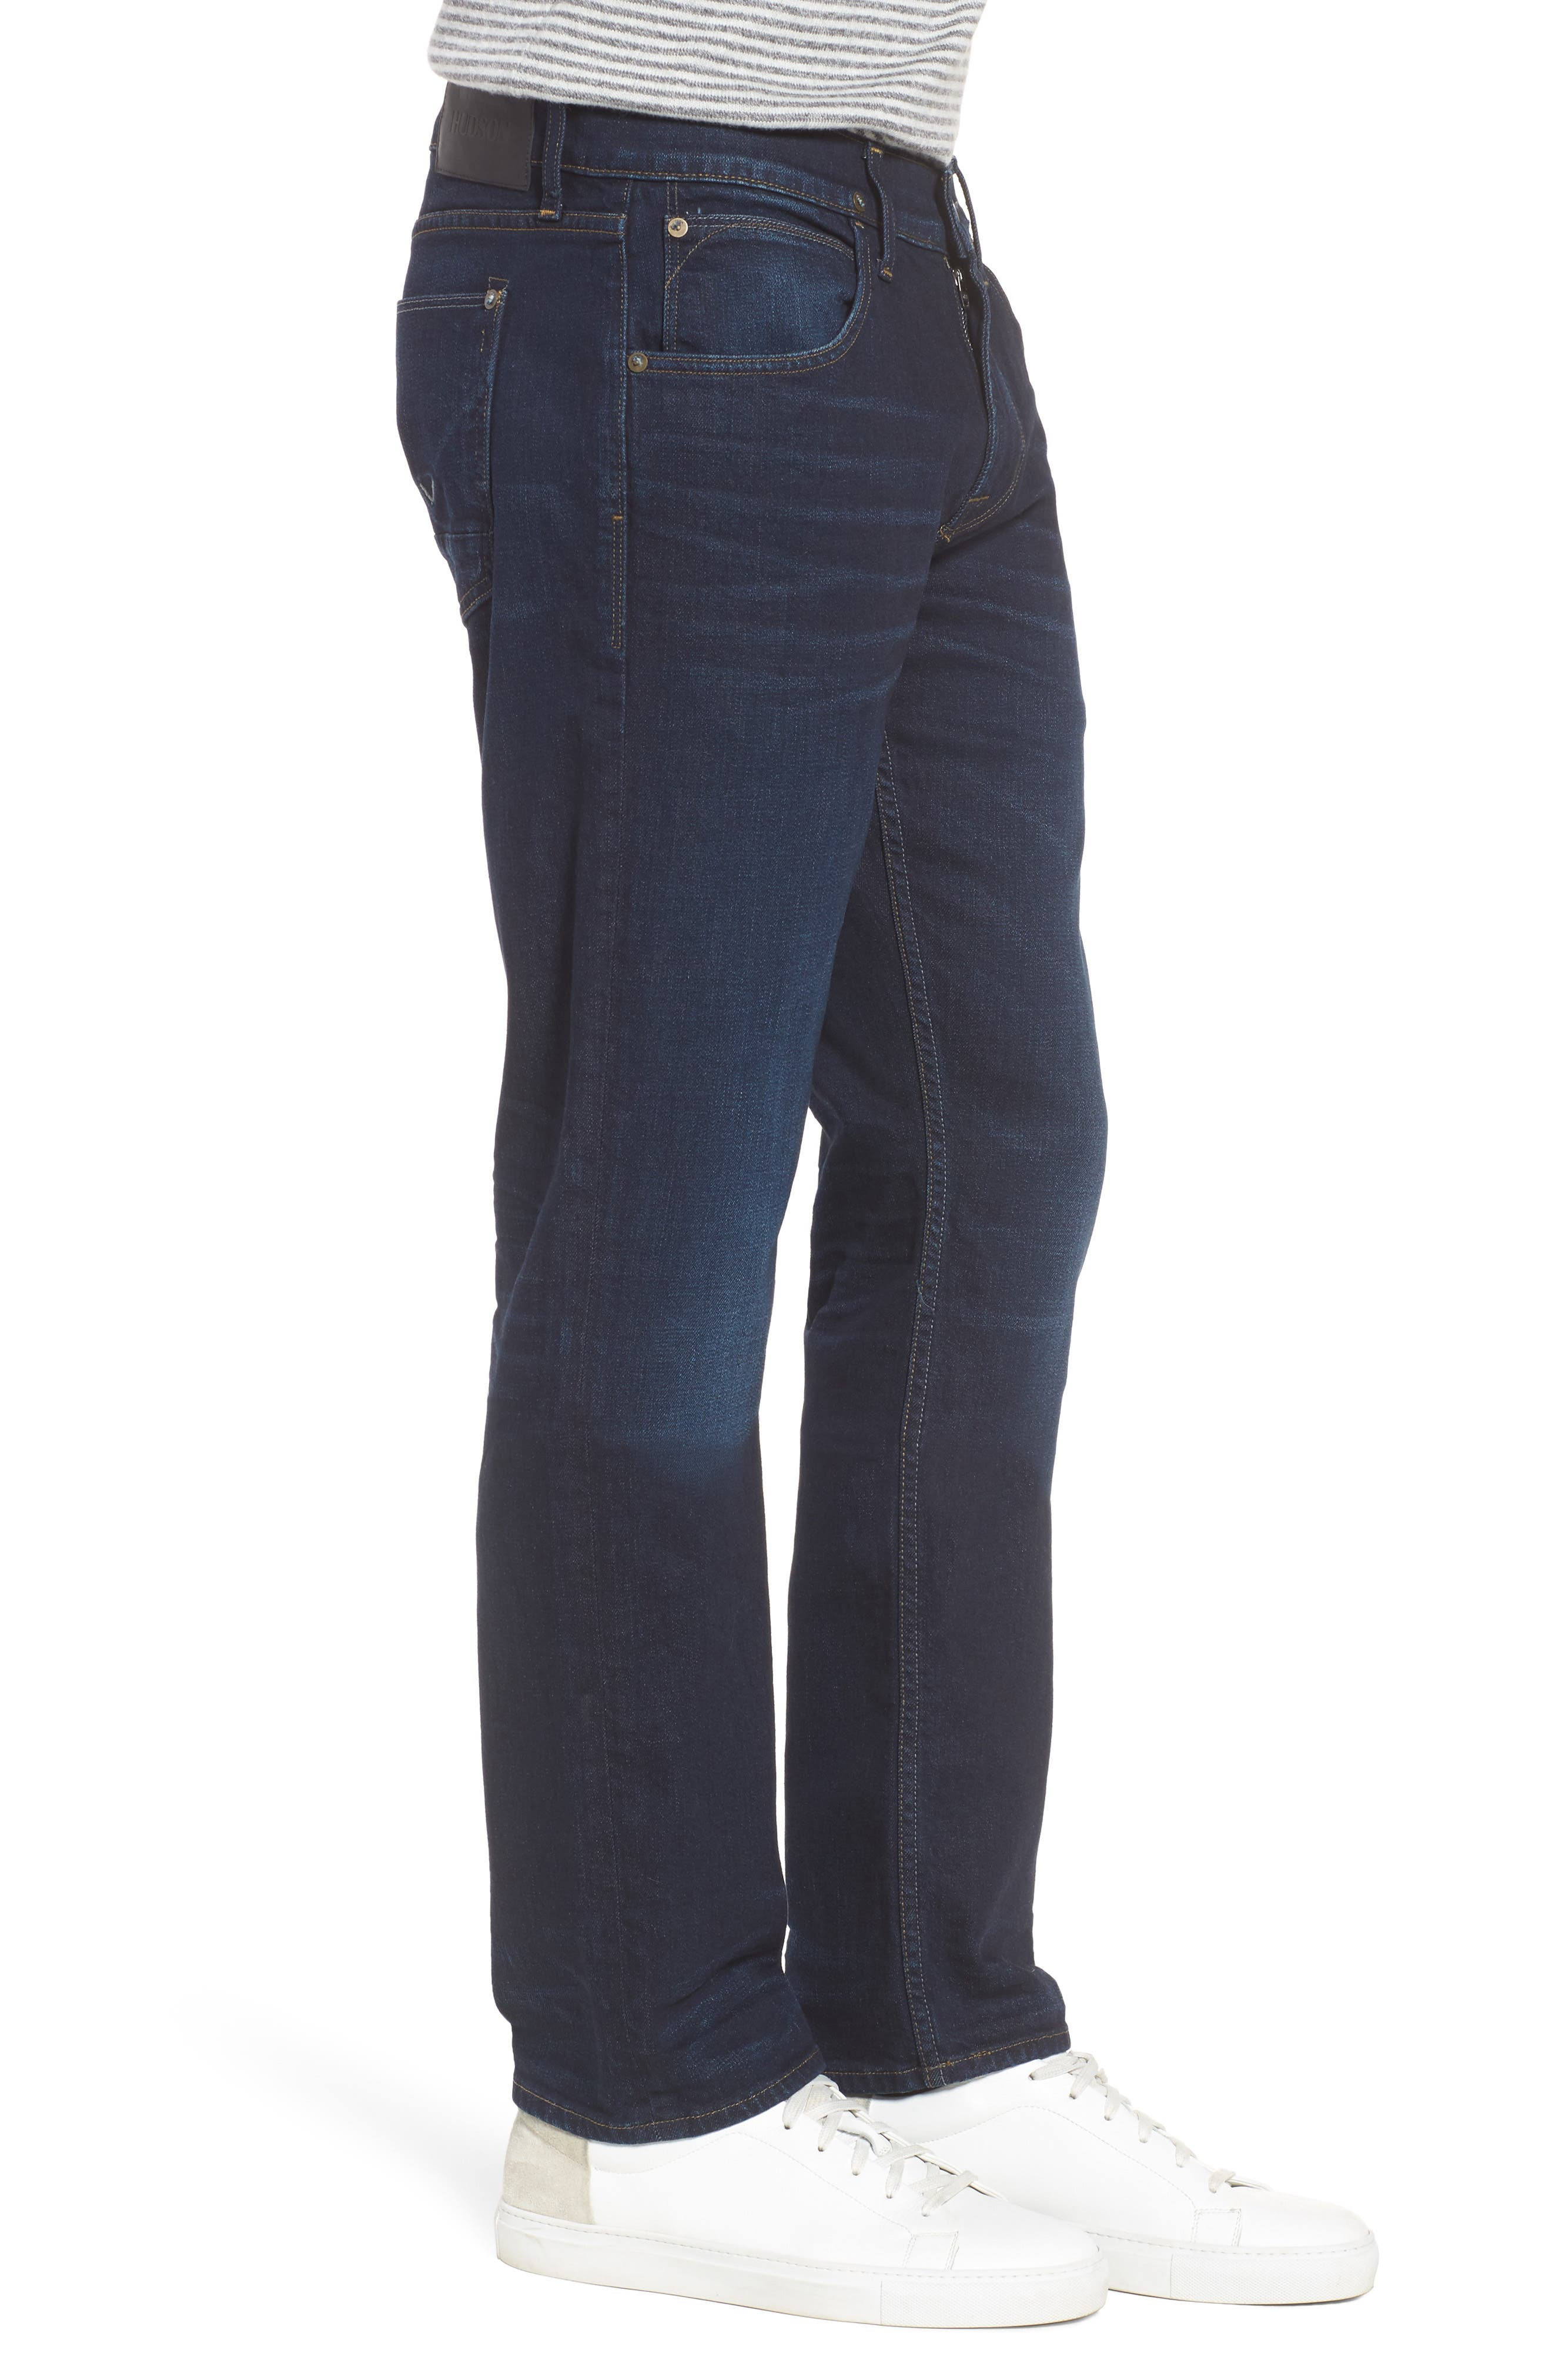 Byron Slim Straight Fit Jeans,                             Alternate thumbnail 3, color,                             405